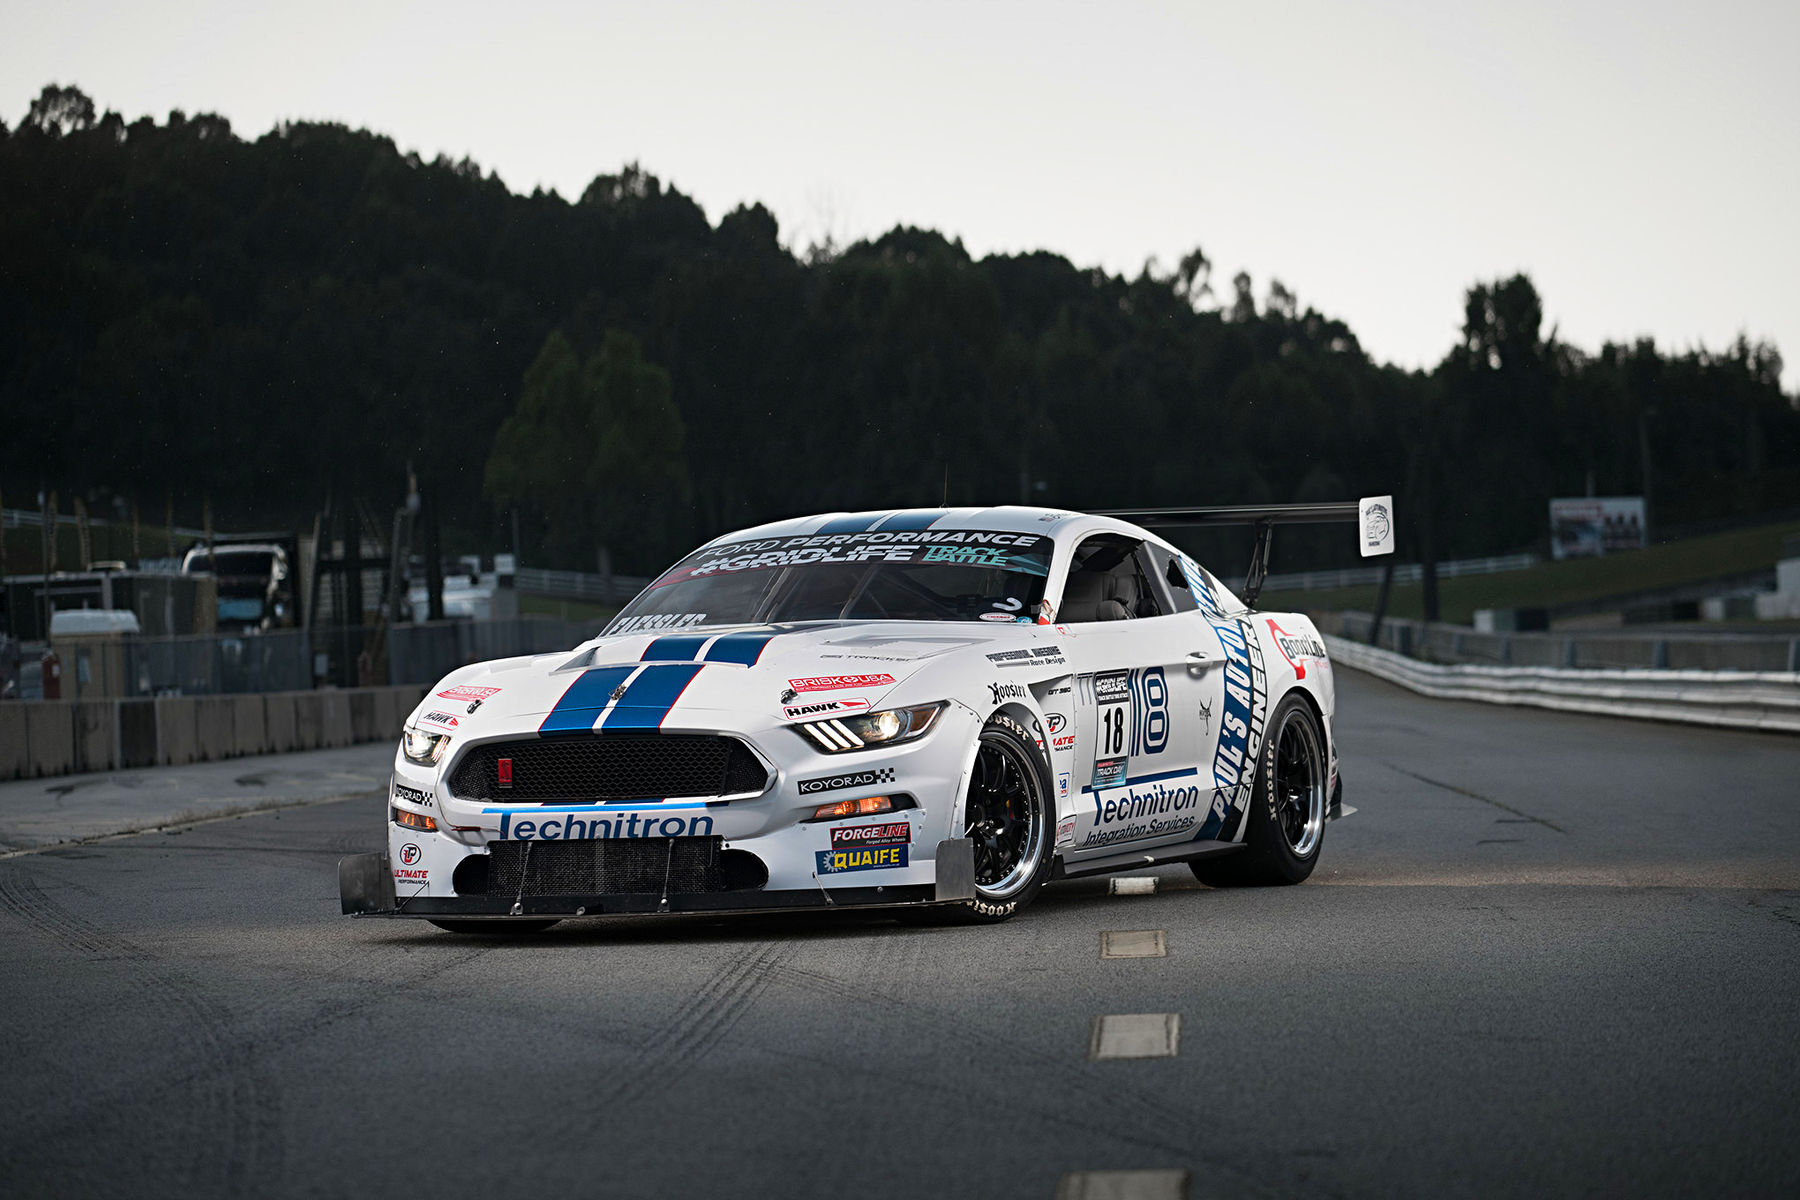 2015 Ford Mustang | Brian Faessler's Paul's Automotive Engineering Mustang GT350R on Forgeline GA3R Wheels